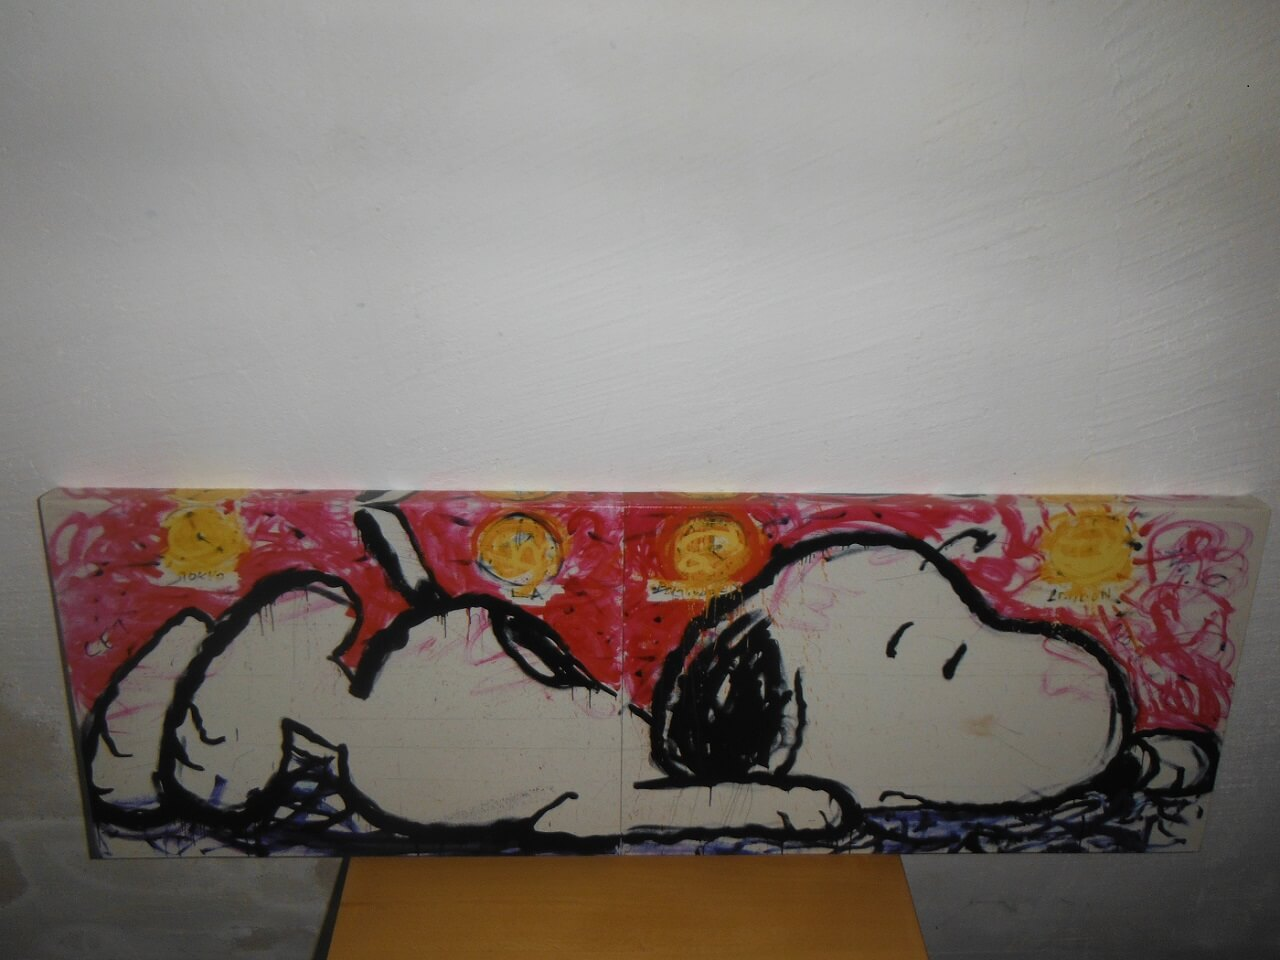 Snoopy Bild by Everhart